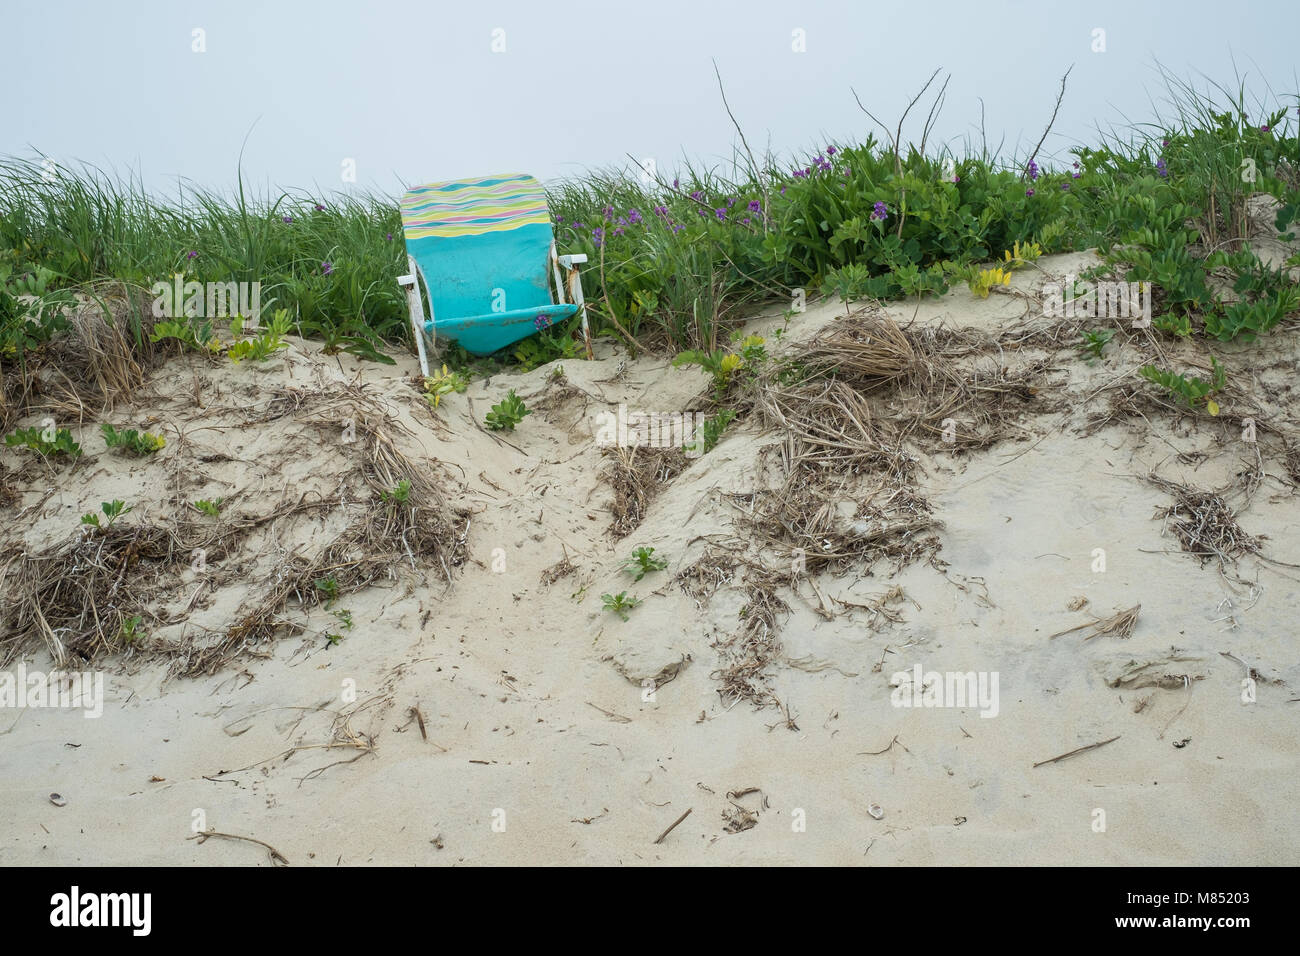 Scenes from the empty beaches of Nantucket Island on a foggy spring day. - Stock Image